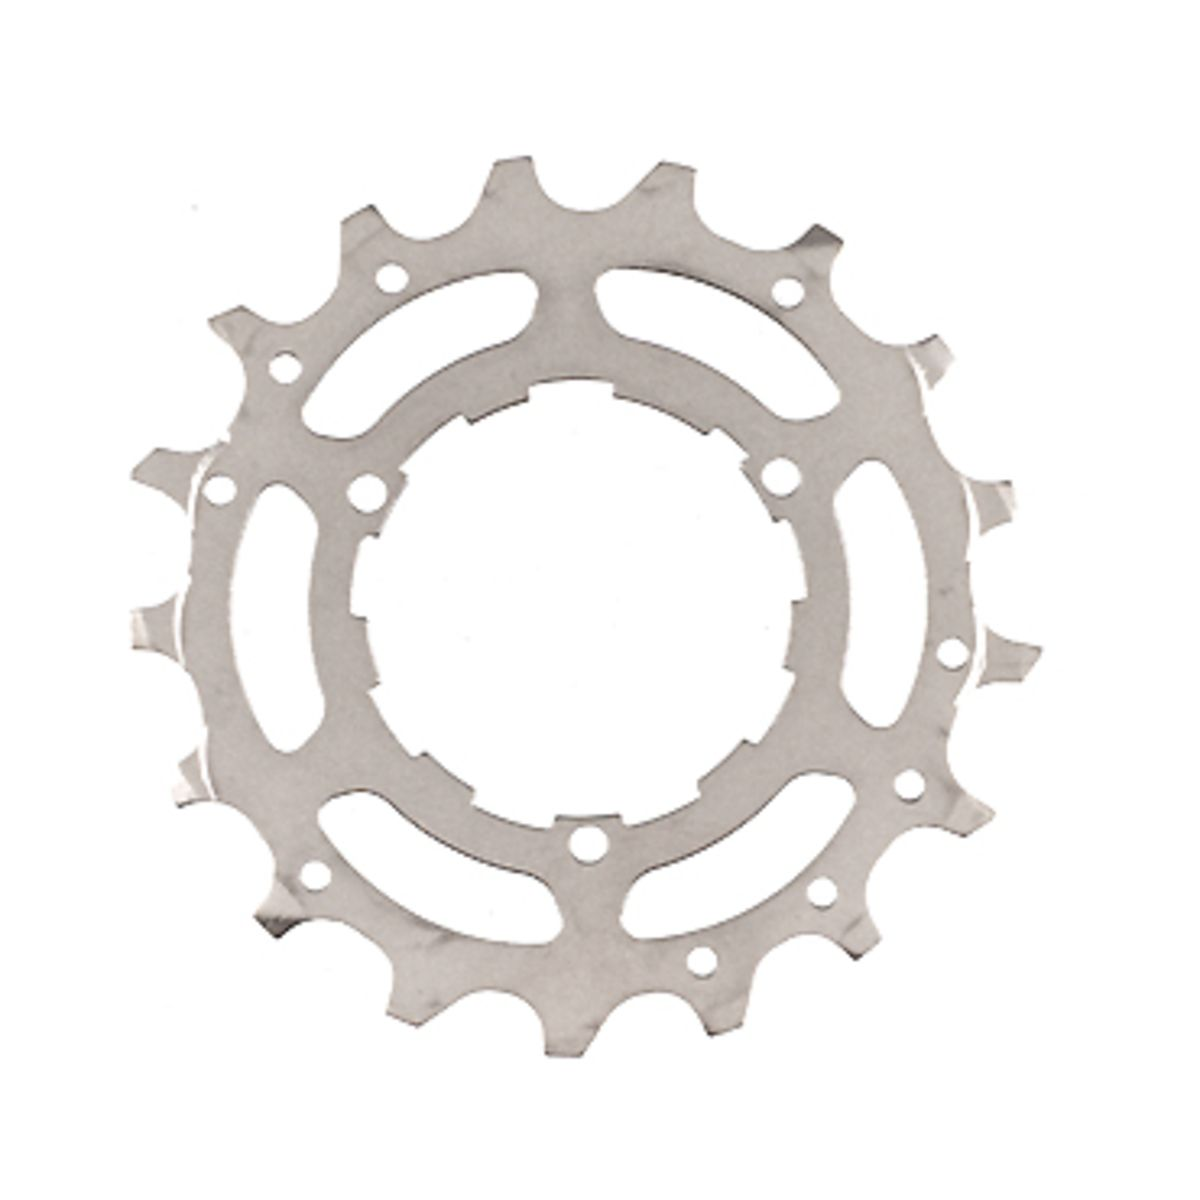 XTR CS-M980 10-speed, 17-tooth replacement sprocket